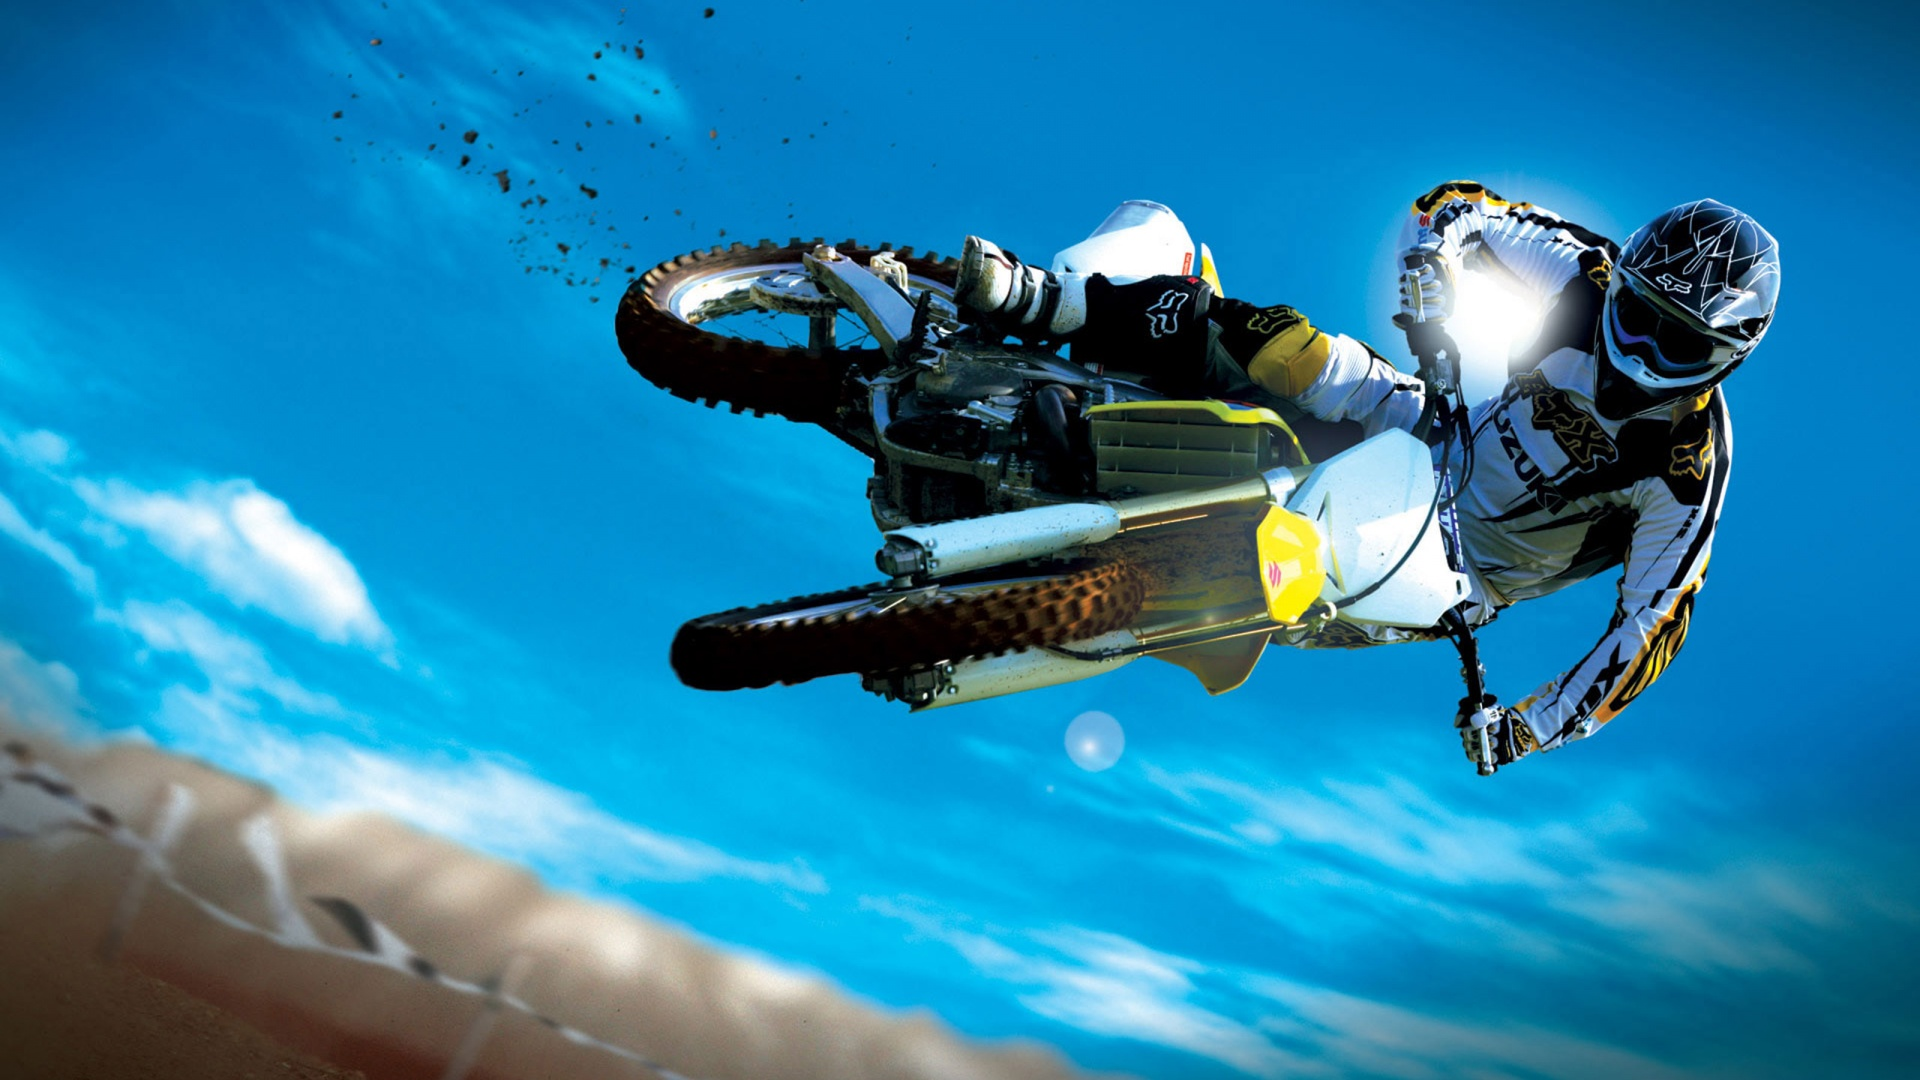 High Resolution Dirt Bike Motocross Wallpaper HD 15   SiWallpaperHD 1920x1080